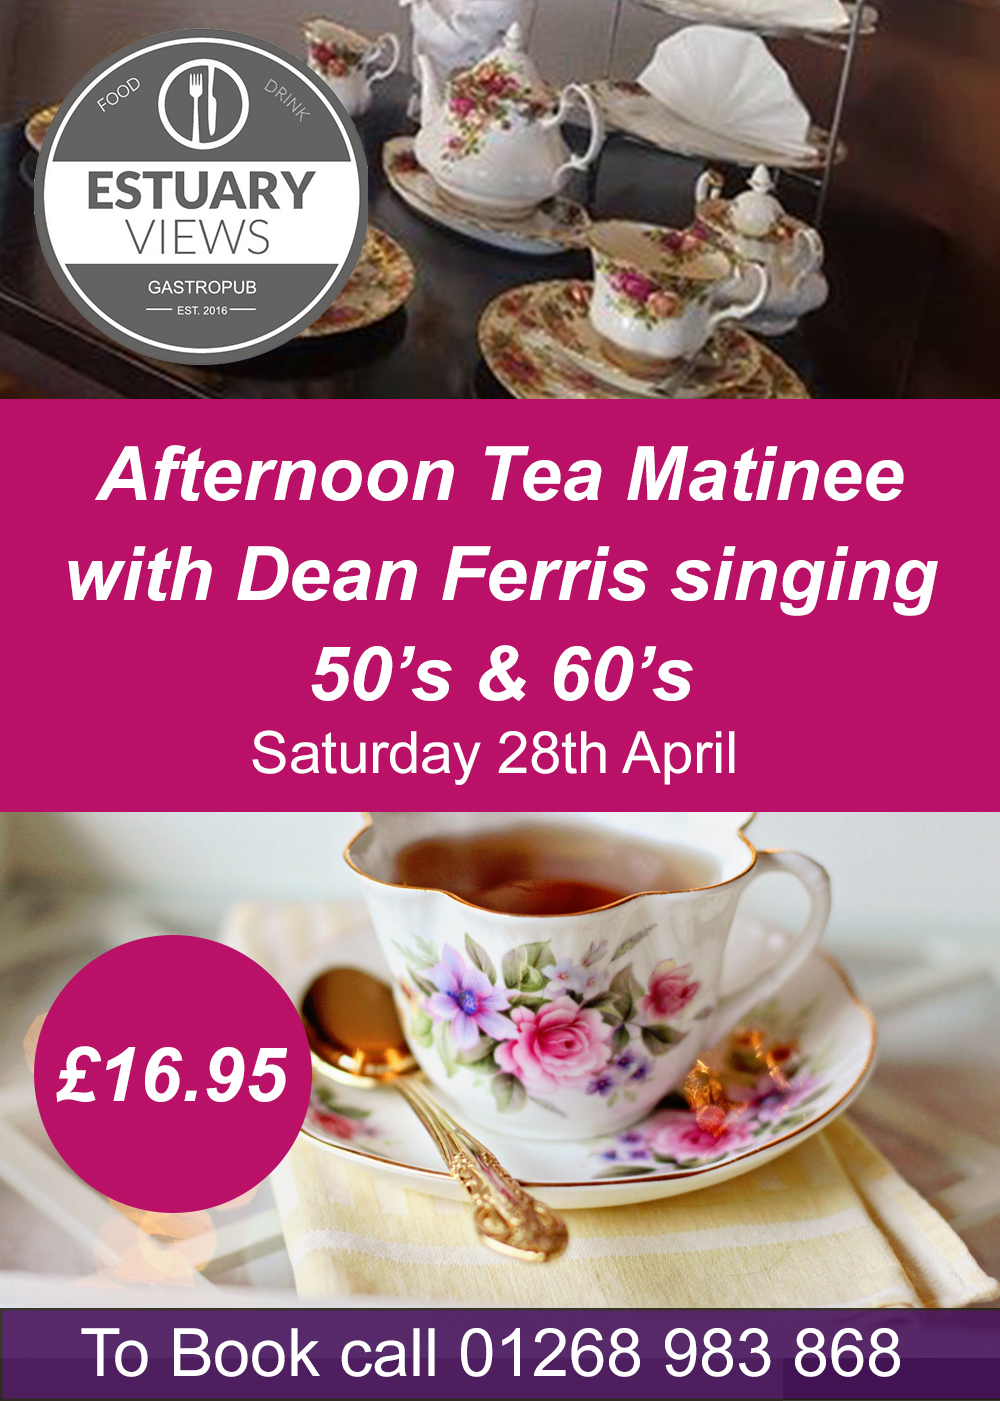 Afternoon Tea Matinee with Dean Ferris